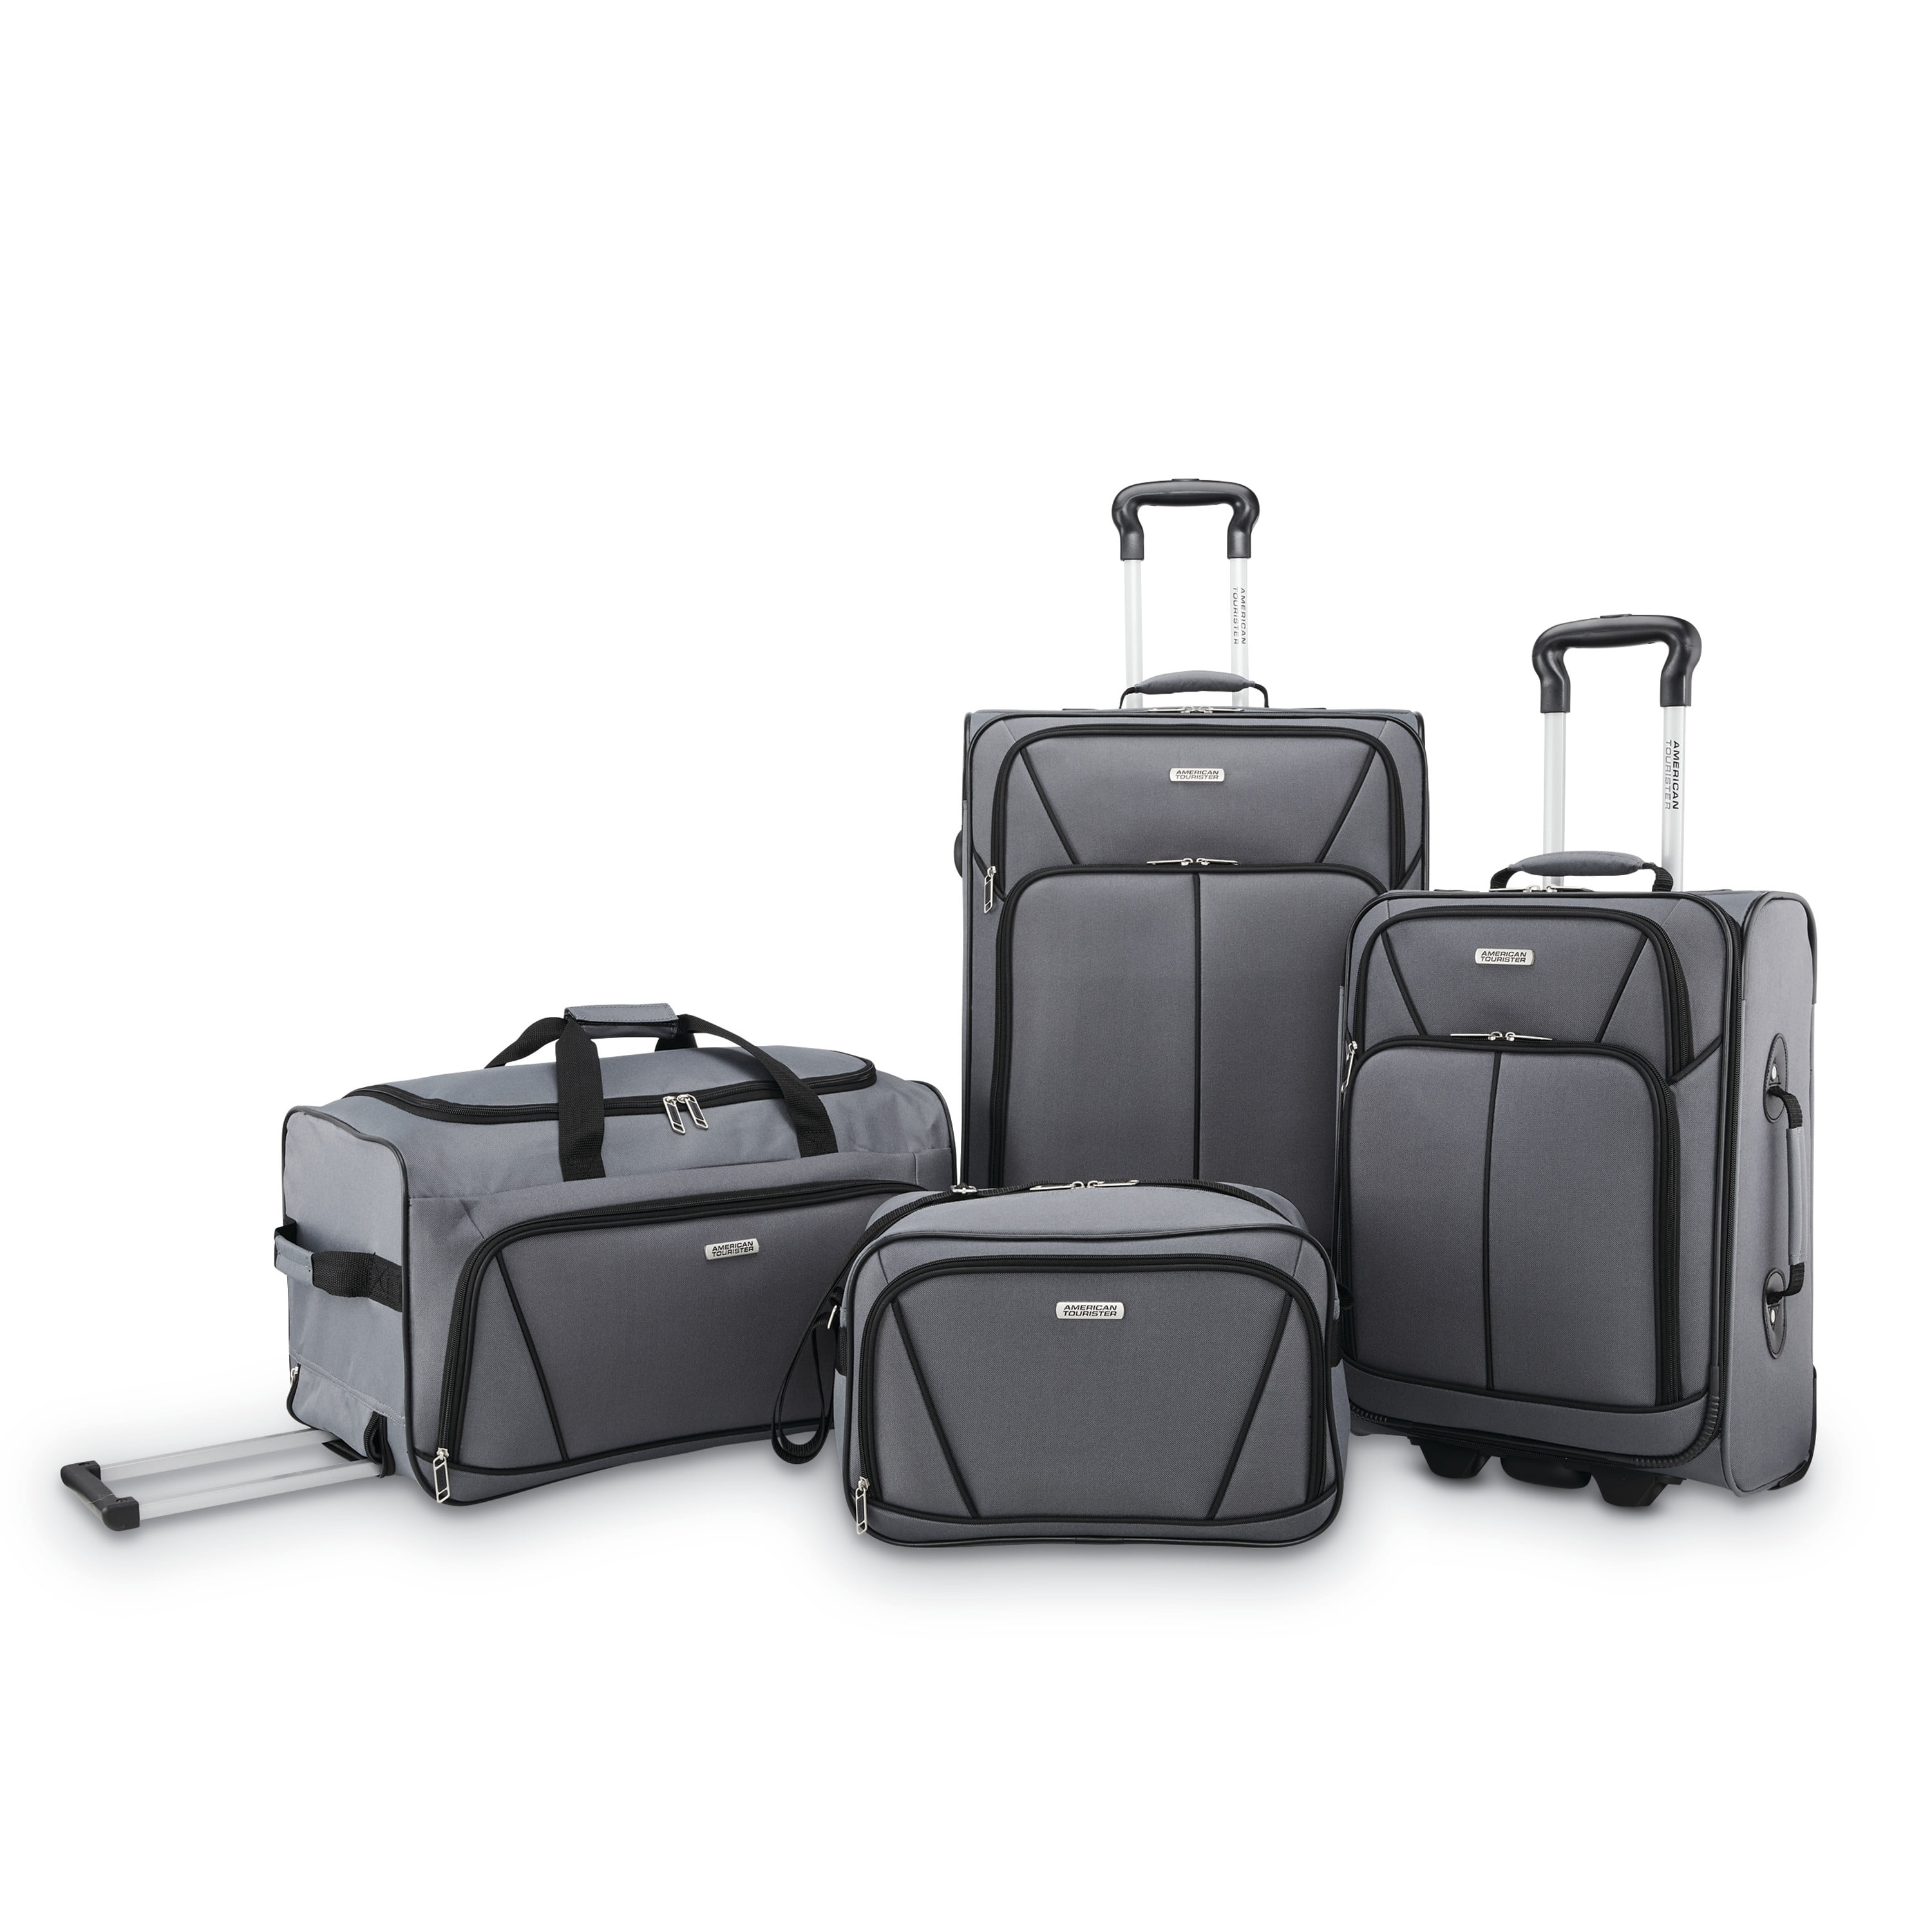 47757dd52a American Tourister - American Tourister 4 Piece Softside Luggage Set -  Walmart.com